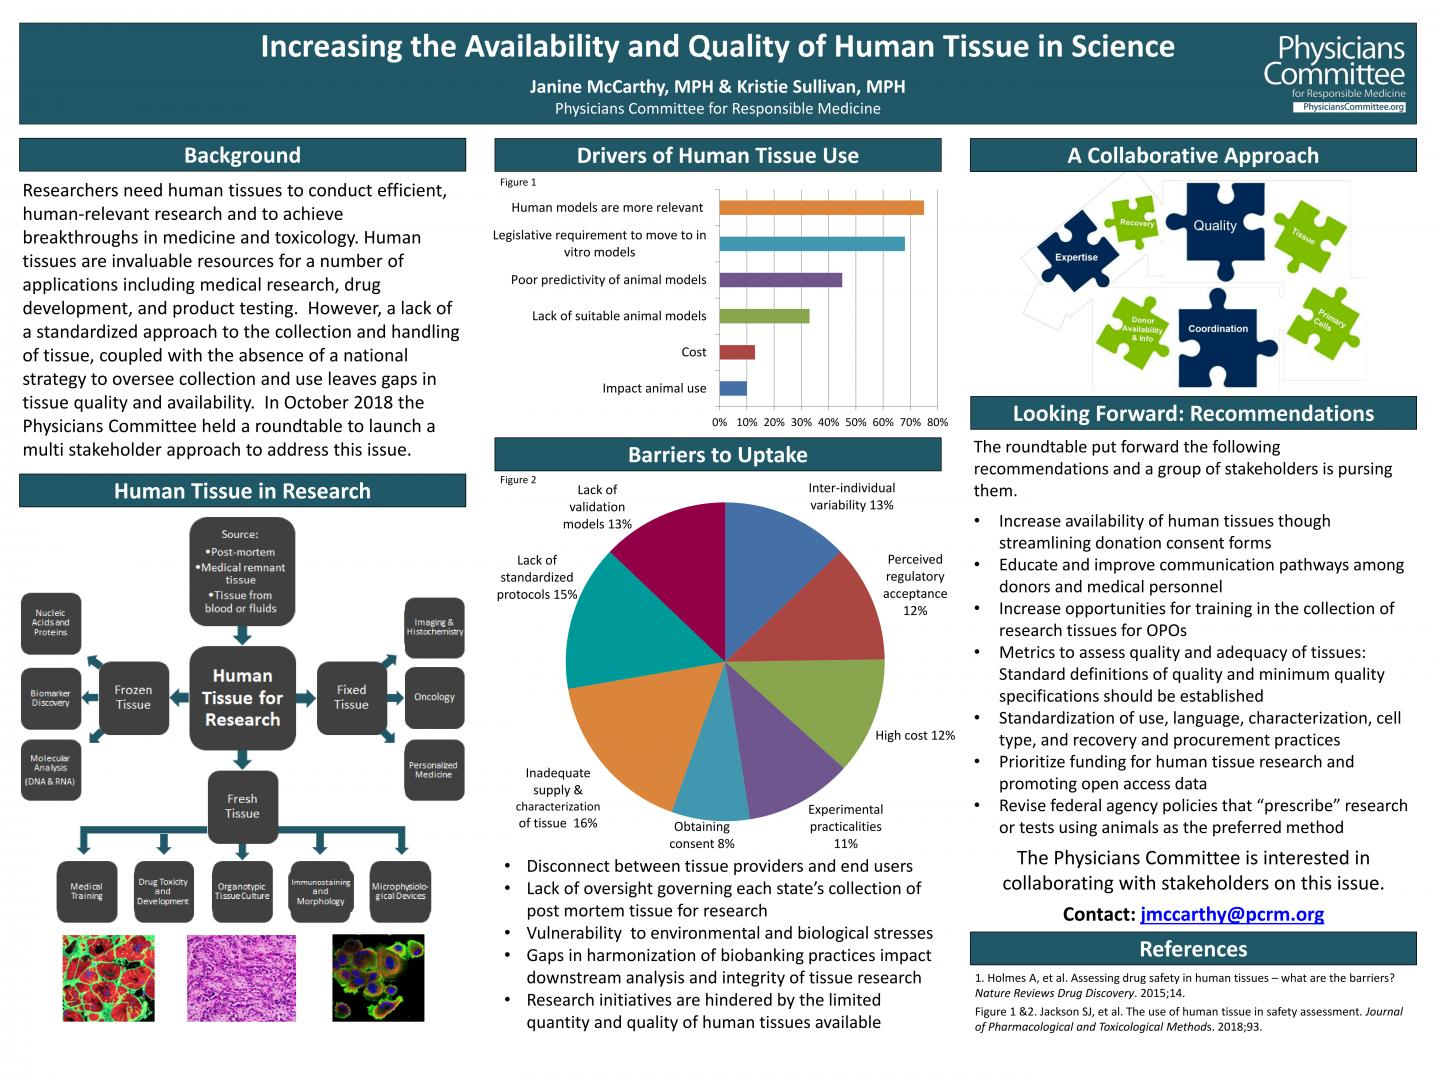 Increasing the Availability and Quality of Human Tissue in Science